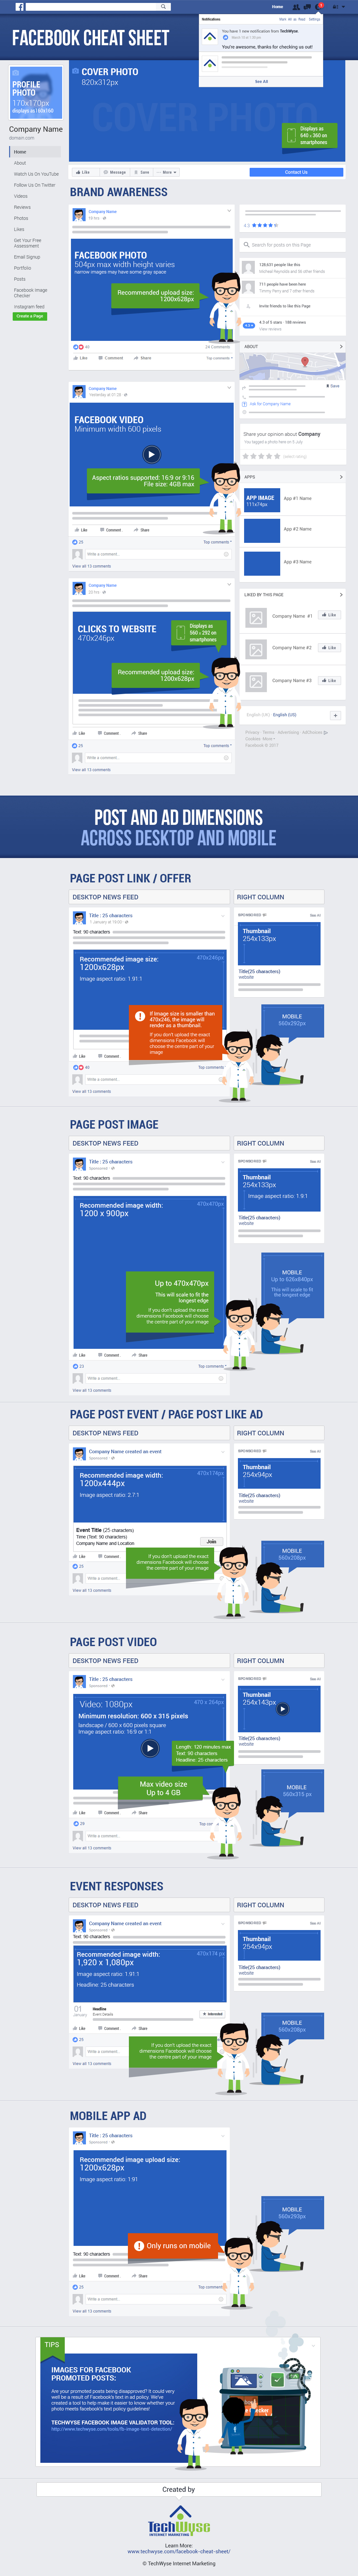 Facebook Cheat Sheet | Facebook Image Sizes | Image sizes for Facebook Marketing | Facebook business page image sizes | Guide to Facebook Marketing | Facebook for business | Facebook tips